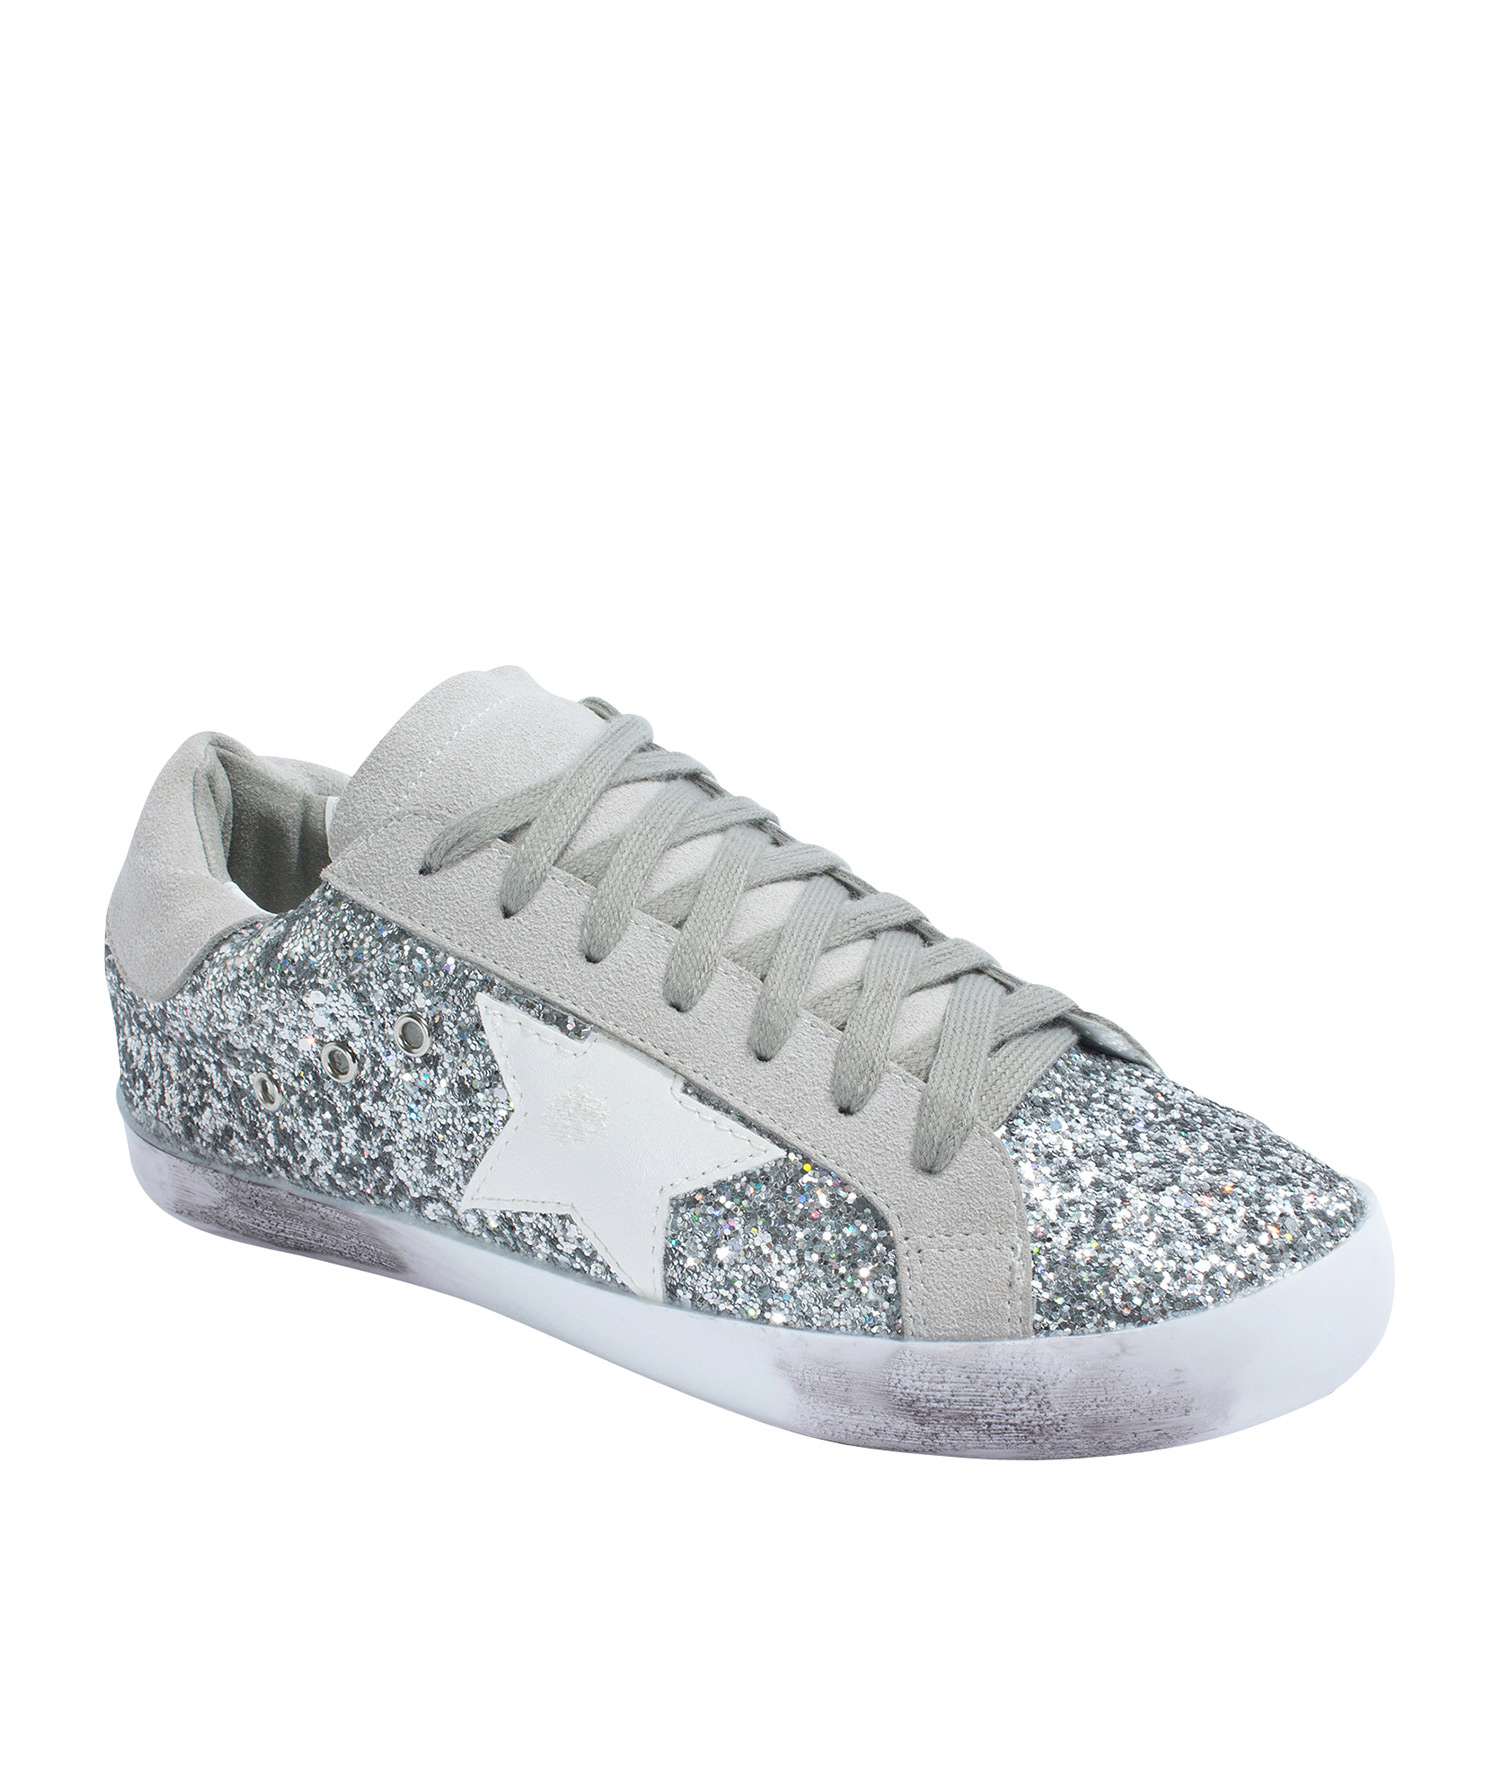 Low Top Silver Glitter Sneakers - annakastleshoes.com 1df2ef600